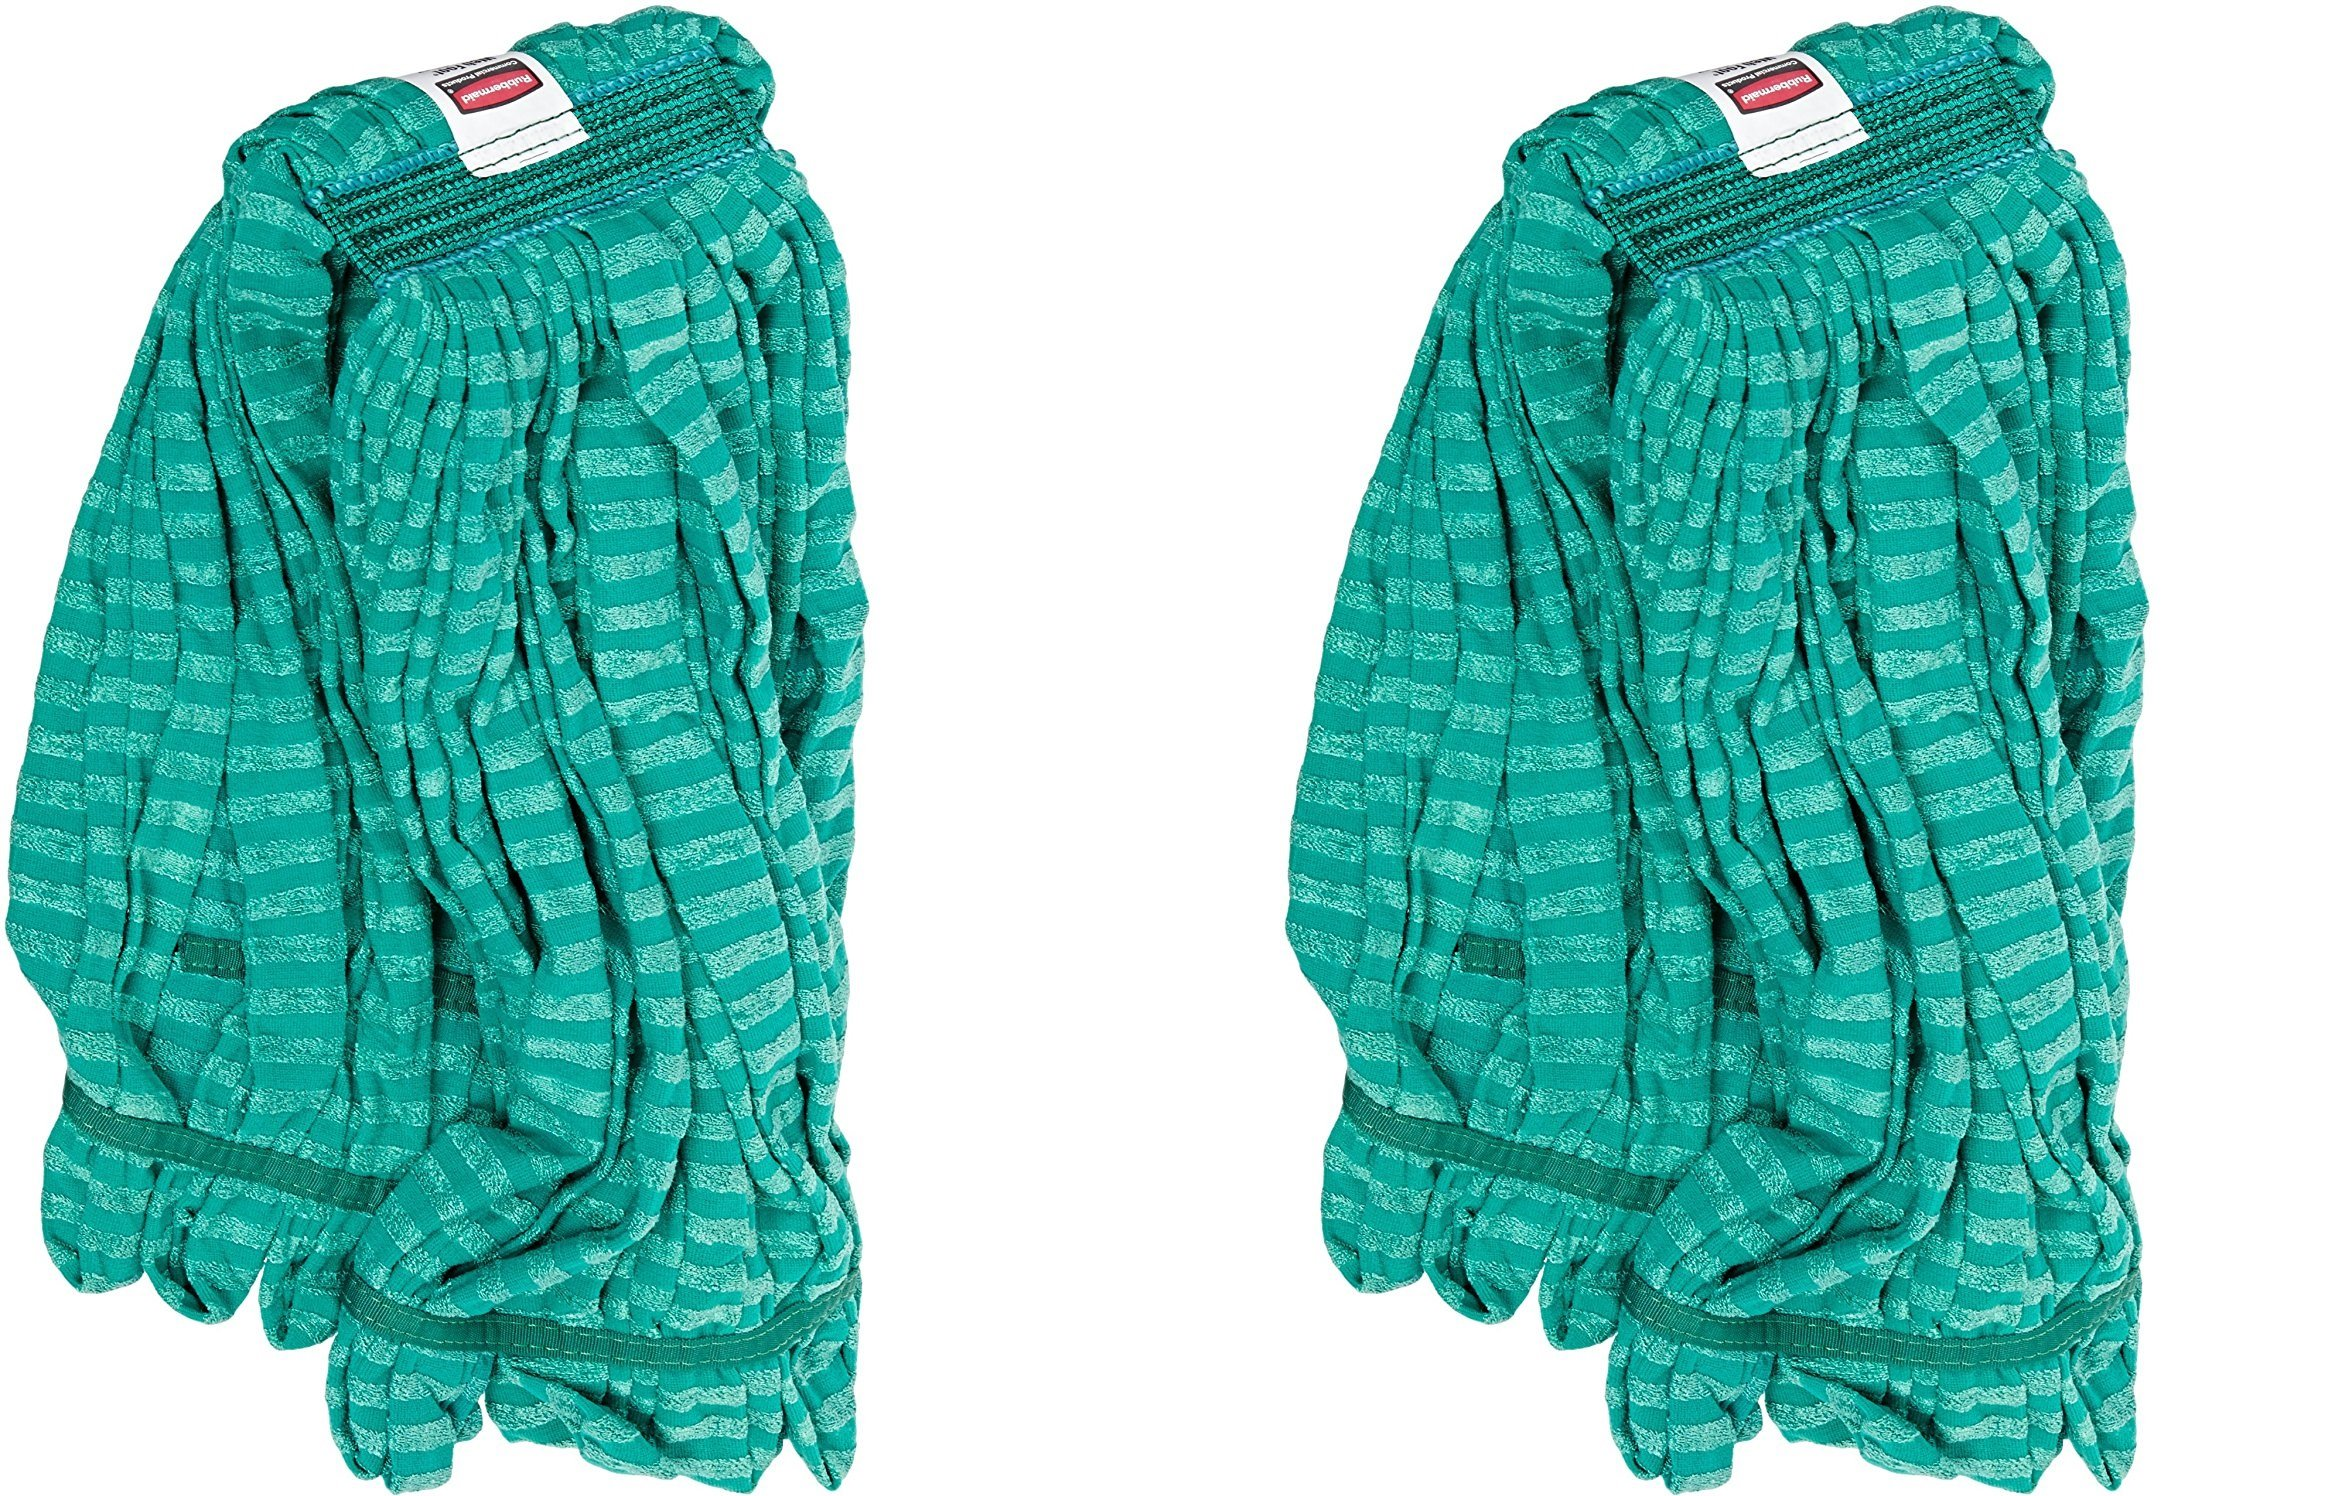 Rubbermaid Commercial Web Foot Microfiber Tube Mop, Large, Green, FGT81306GR00 (2 PACK)